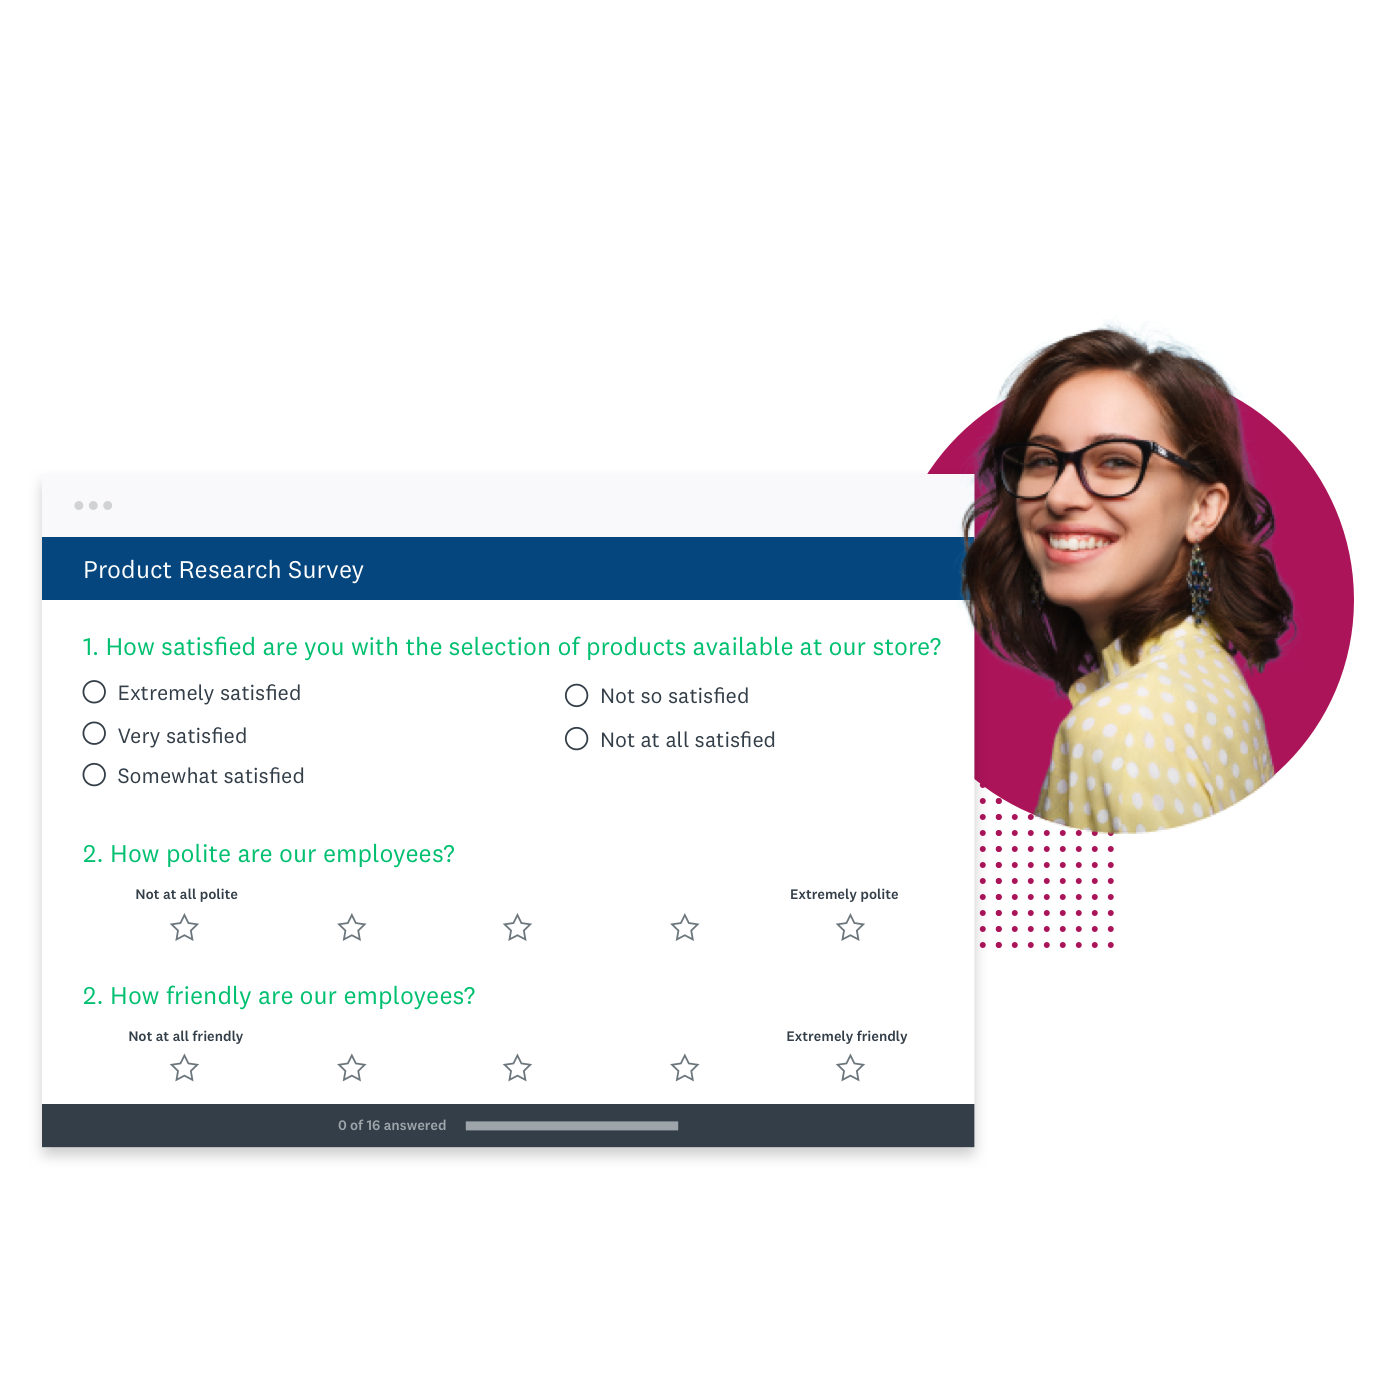 woman-glasses-customer-experience-solutions